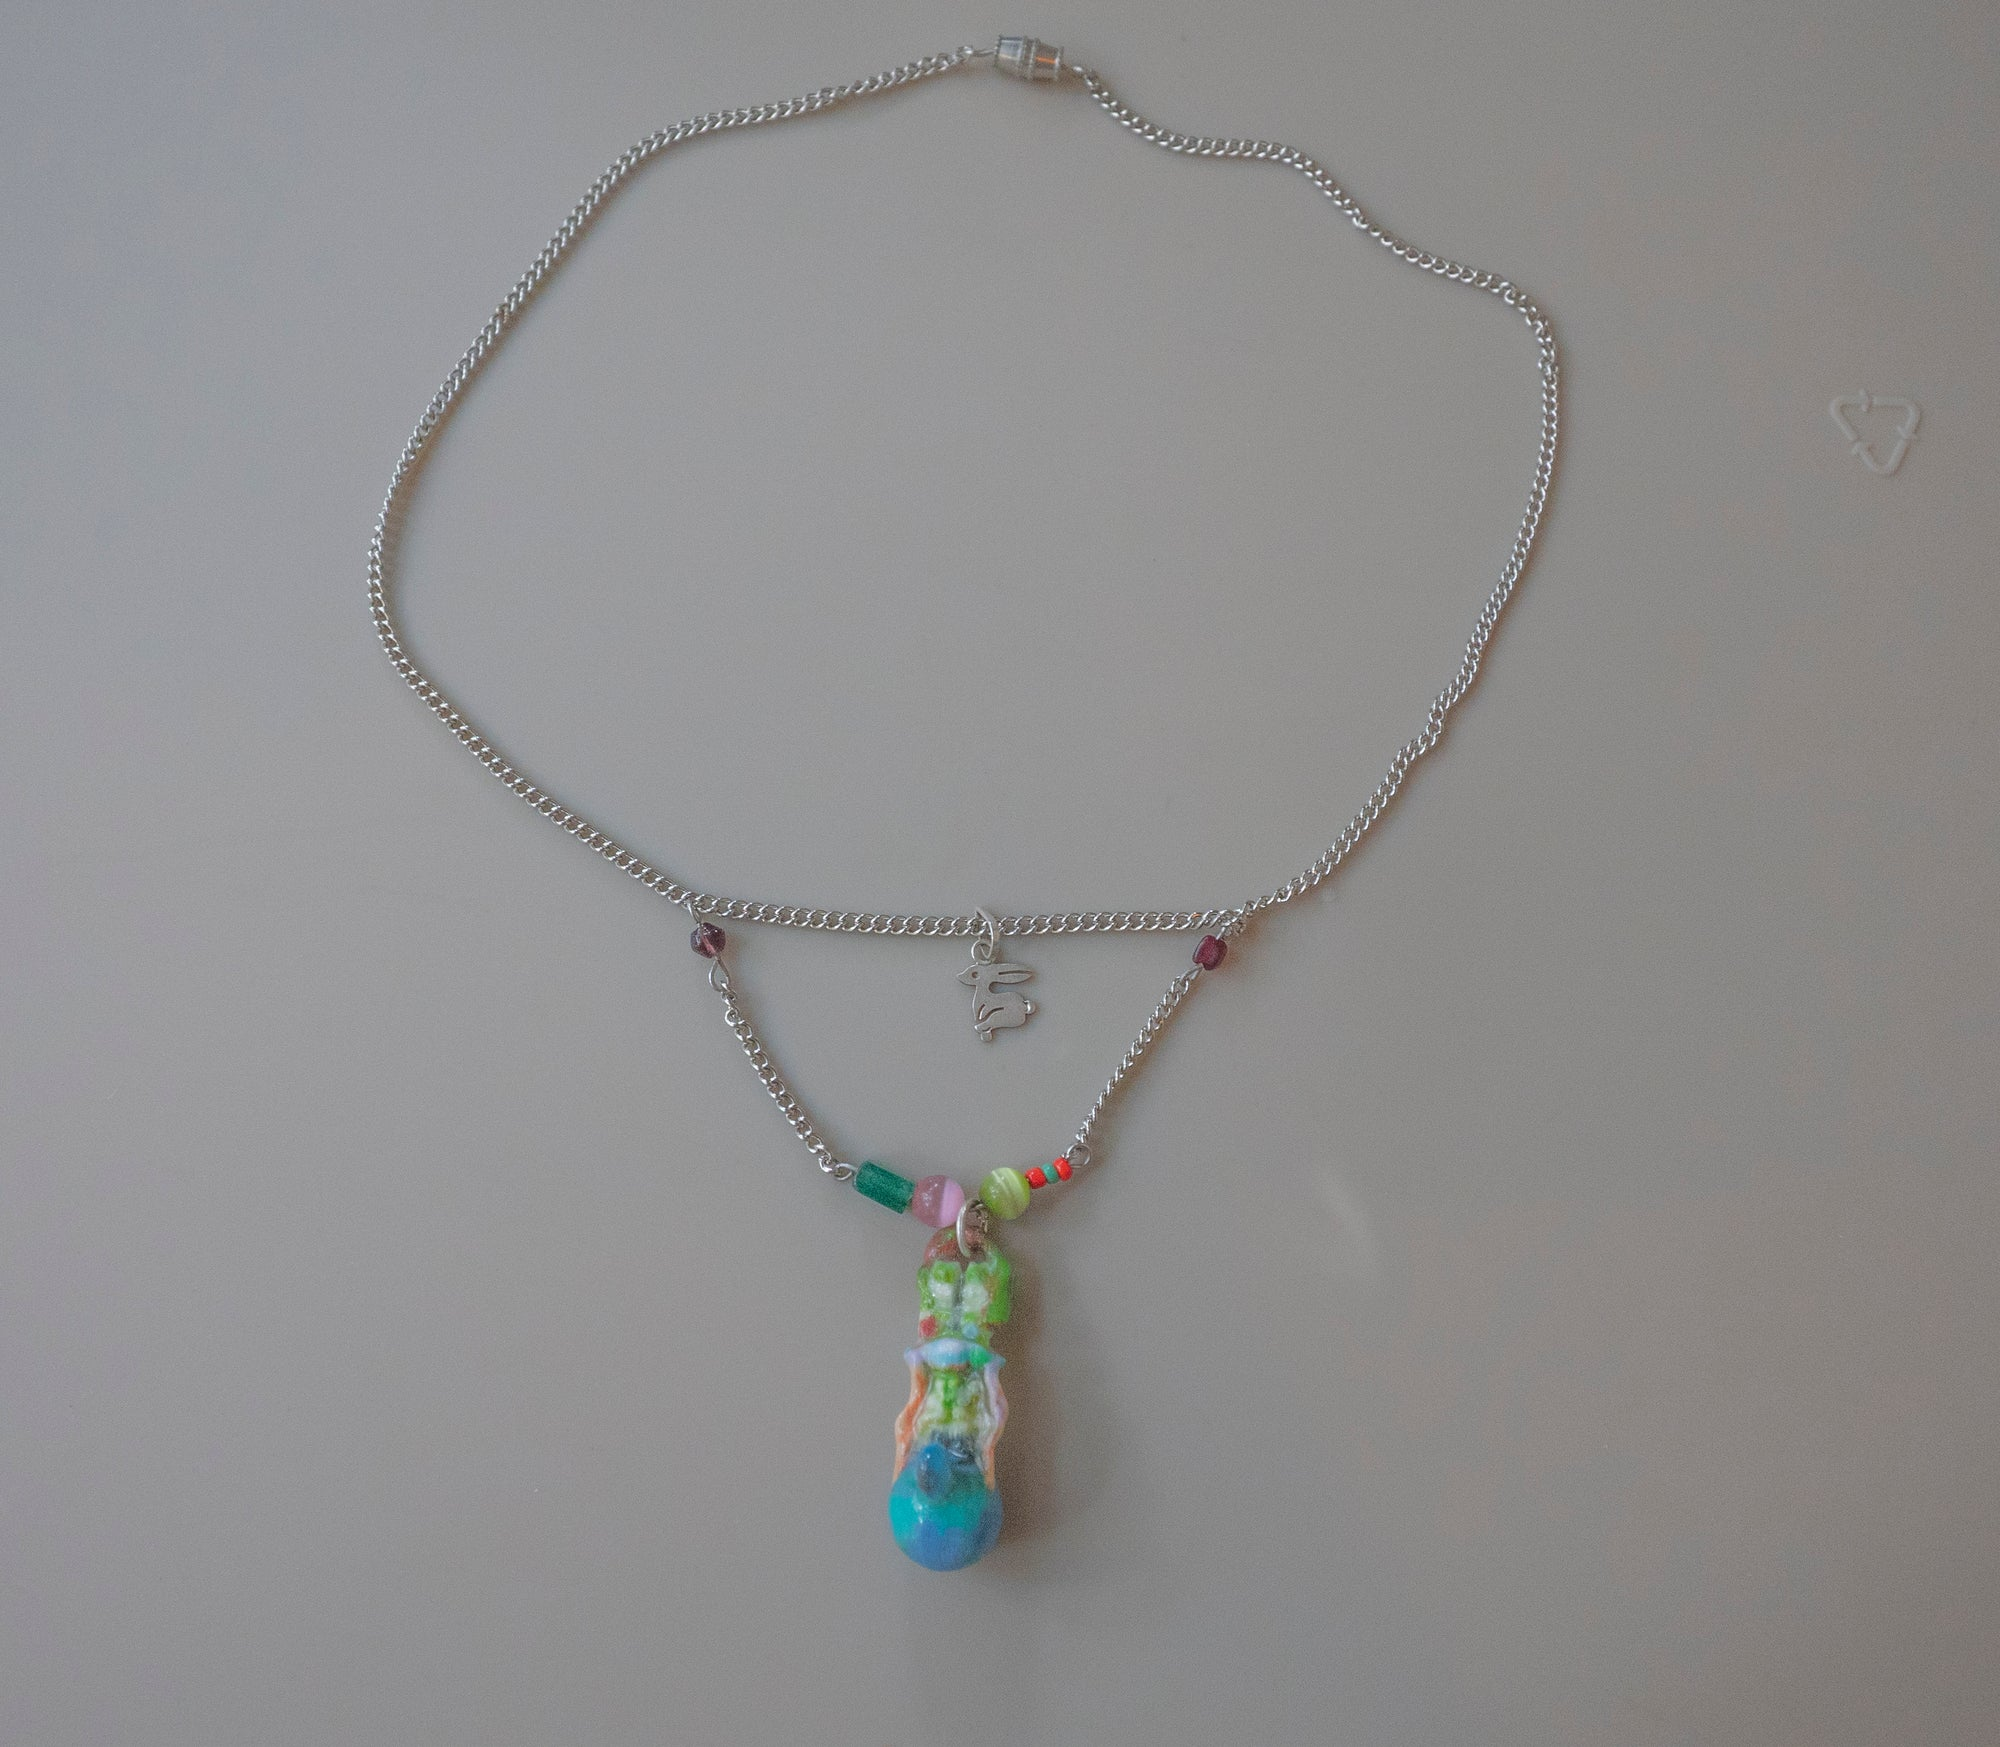 Rabbitcharm Beads Drop